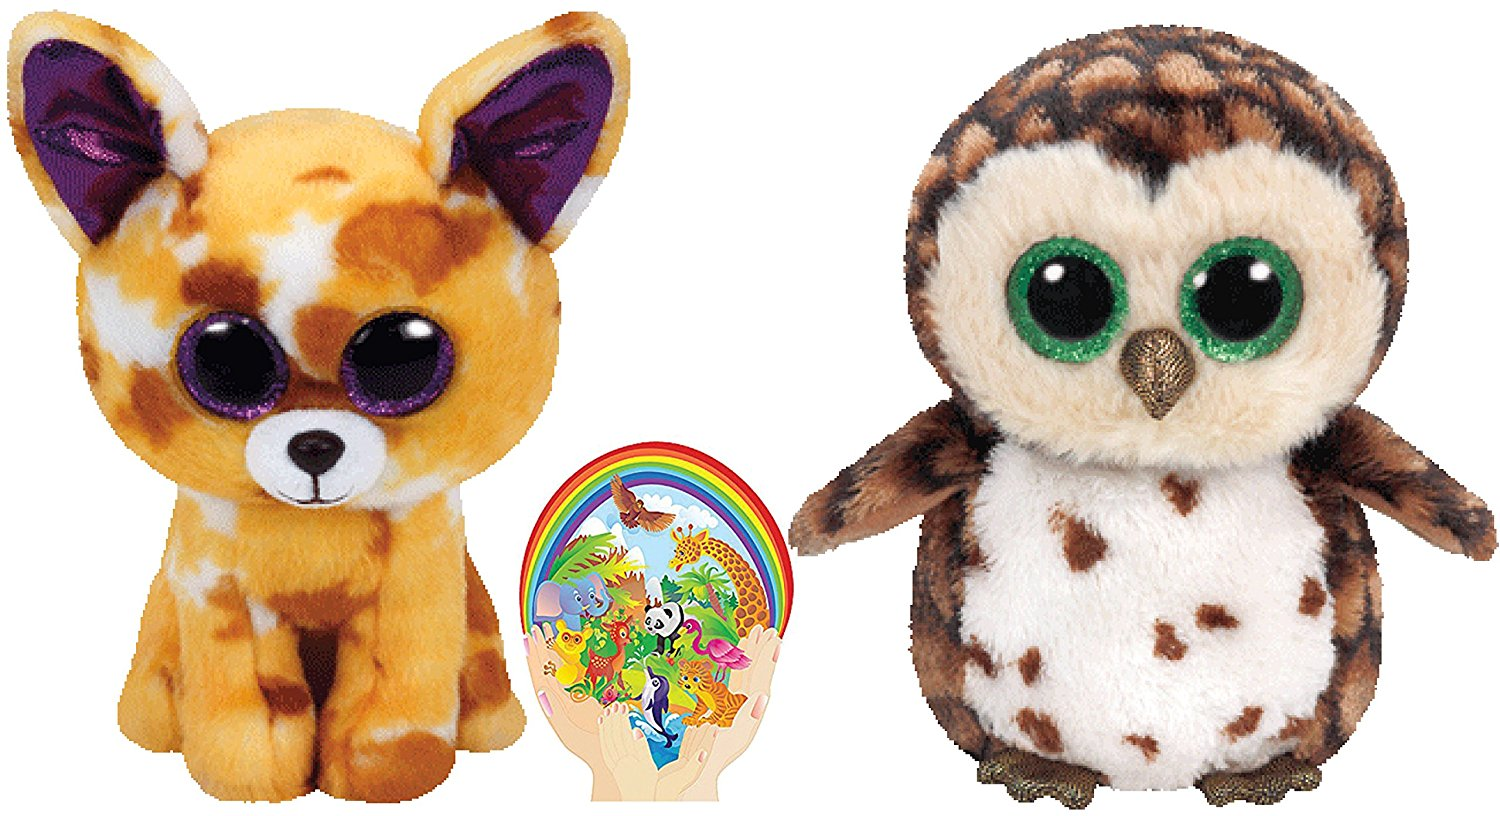 Ty Beanie Boos Owl SAMMY and Chihuahua Dog PABLO Unusual Friends Gift set  of 2 Plush cd81916363e8